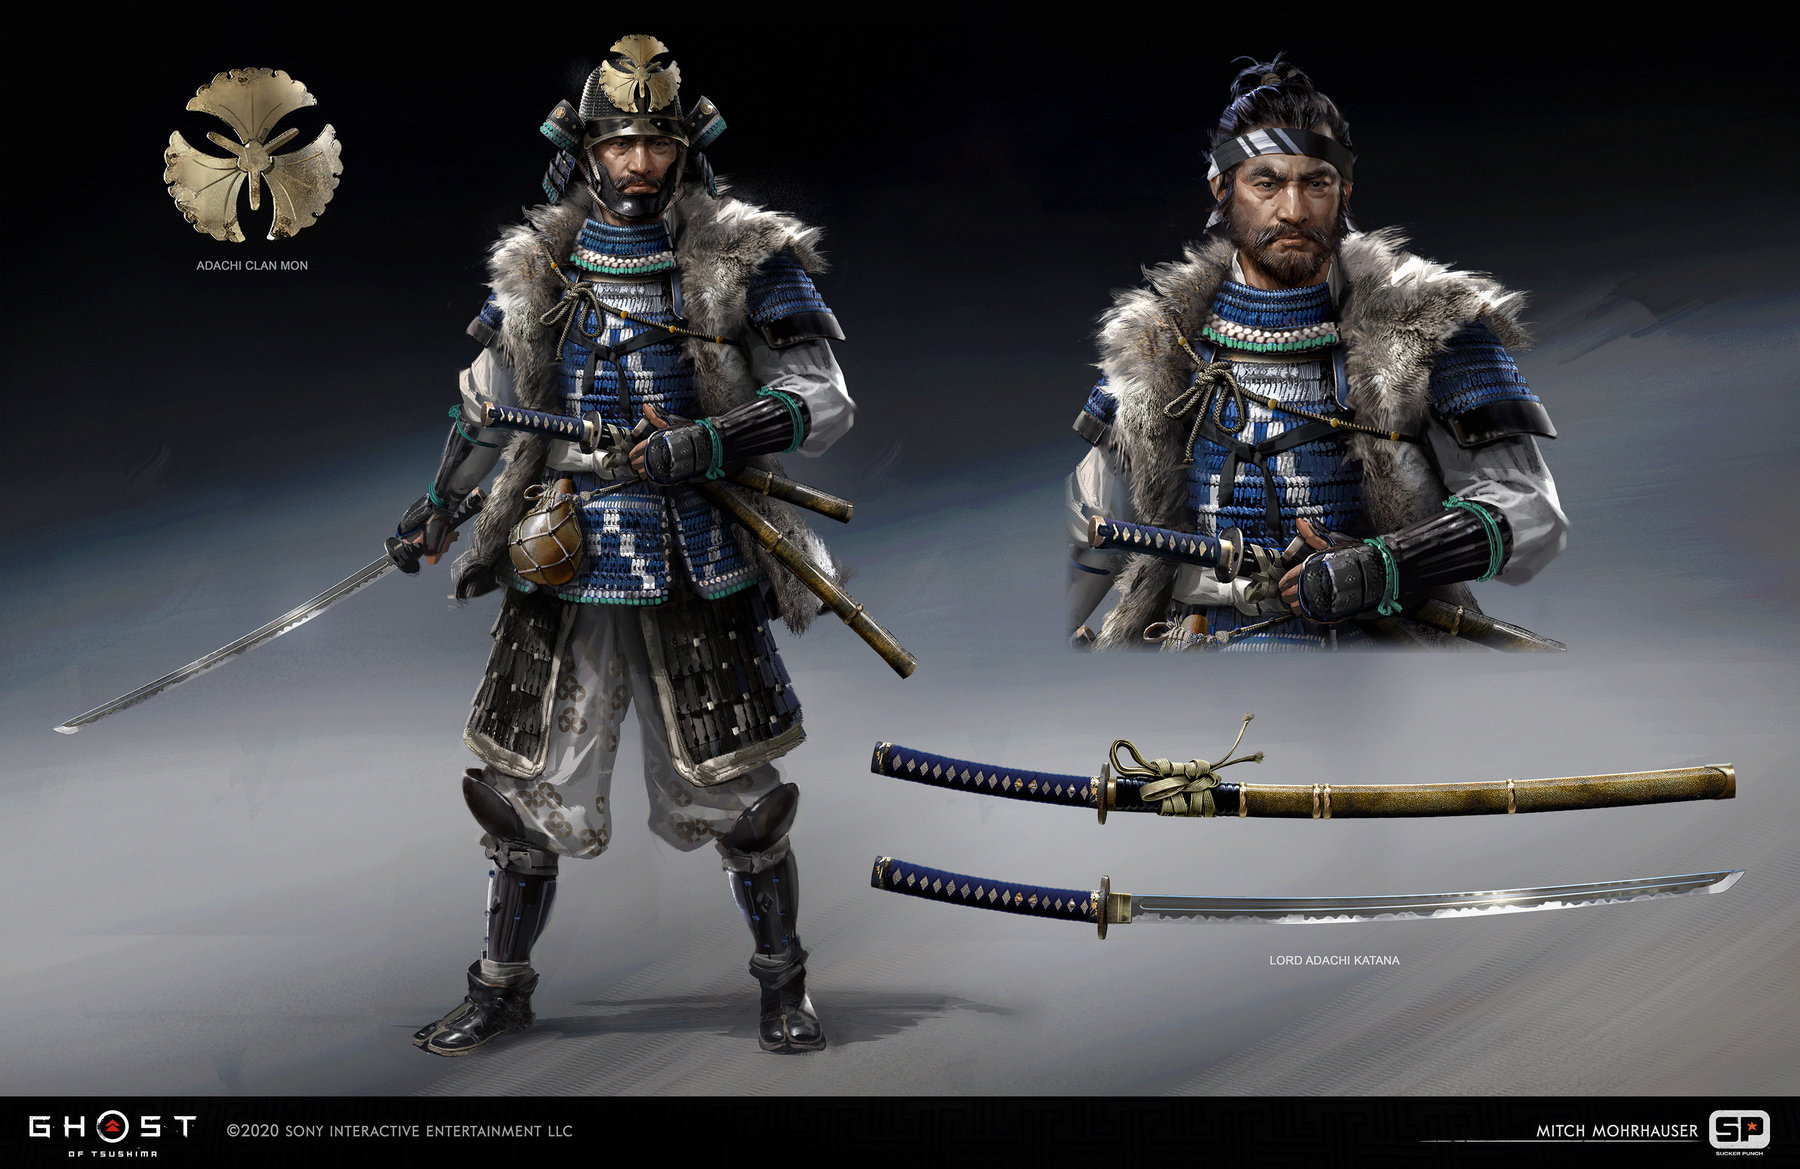 Ghost Of Tsushima concept art mitch mohrhauser lord adachi 1